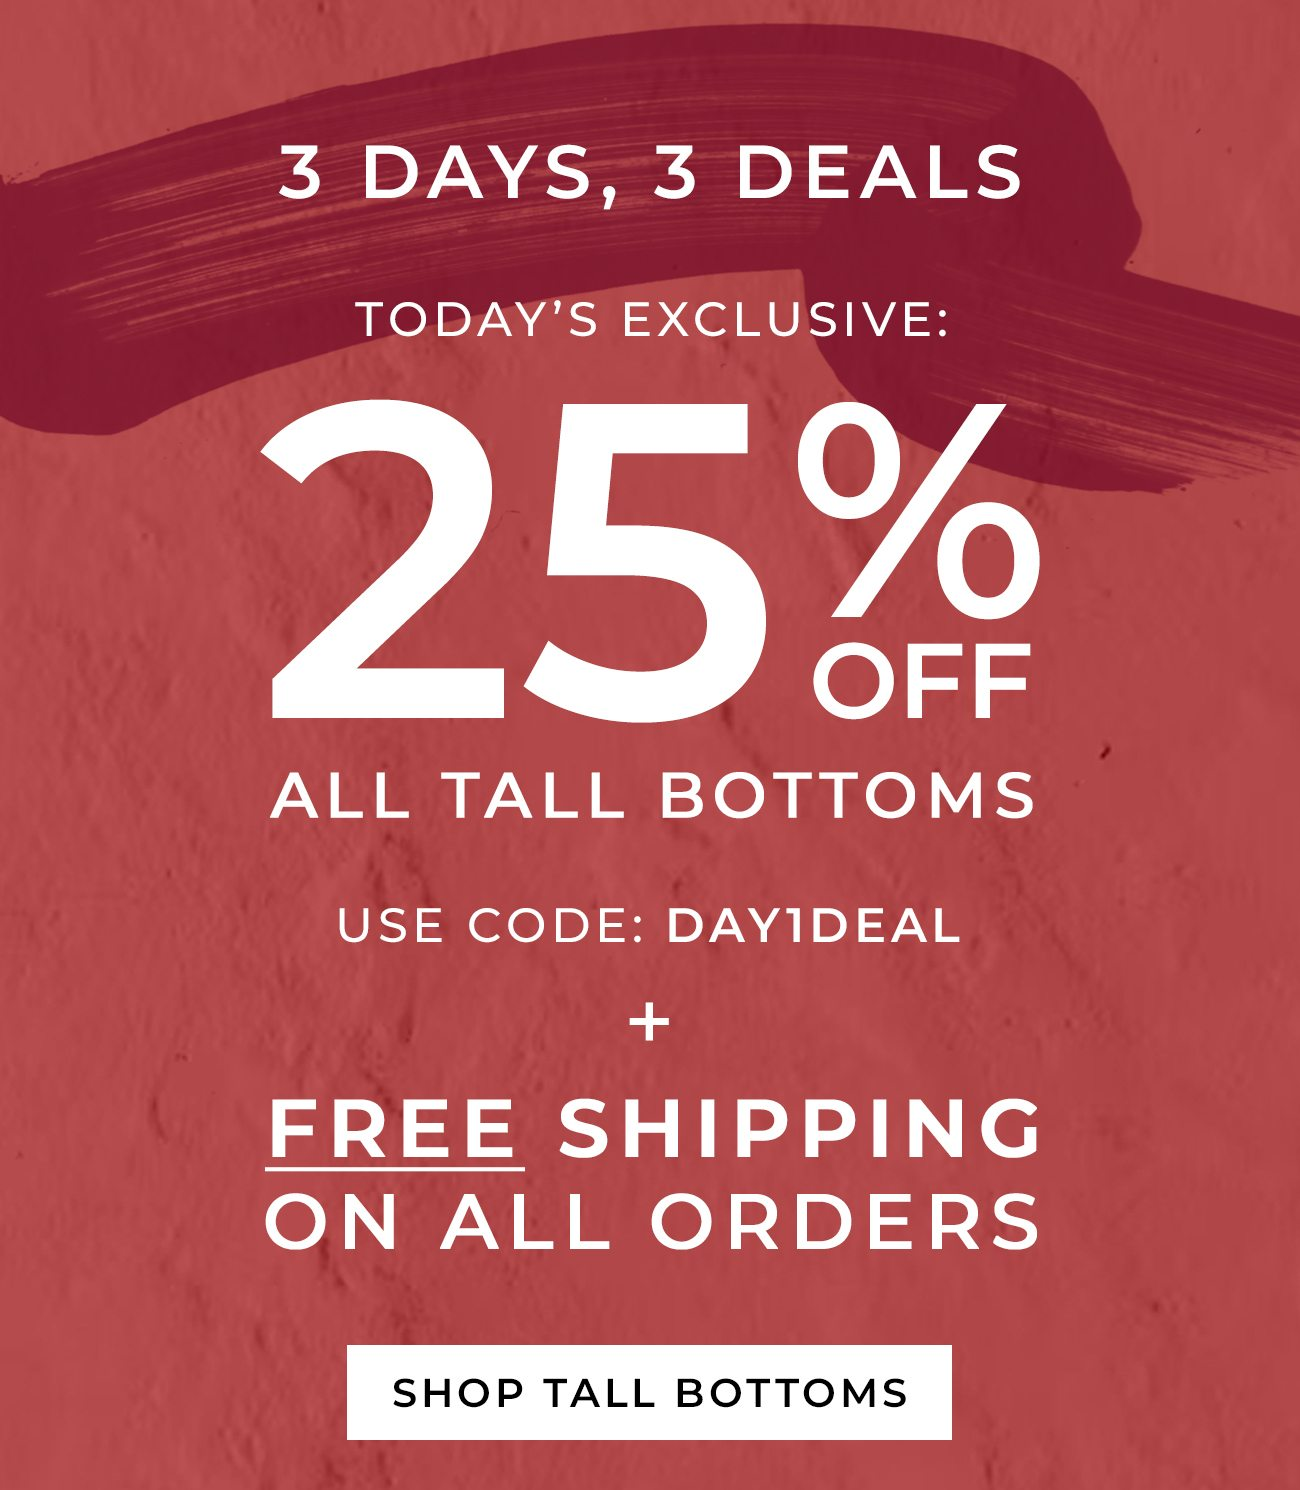 3 Days, 3 Deals | Today's Exclusive: 25% Off Tall Bottoms | Use Code: DAY1DEAL